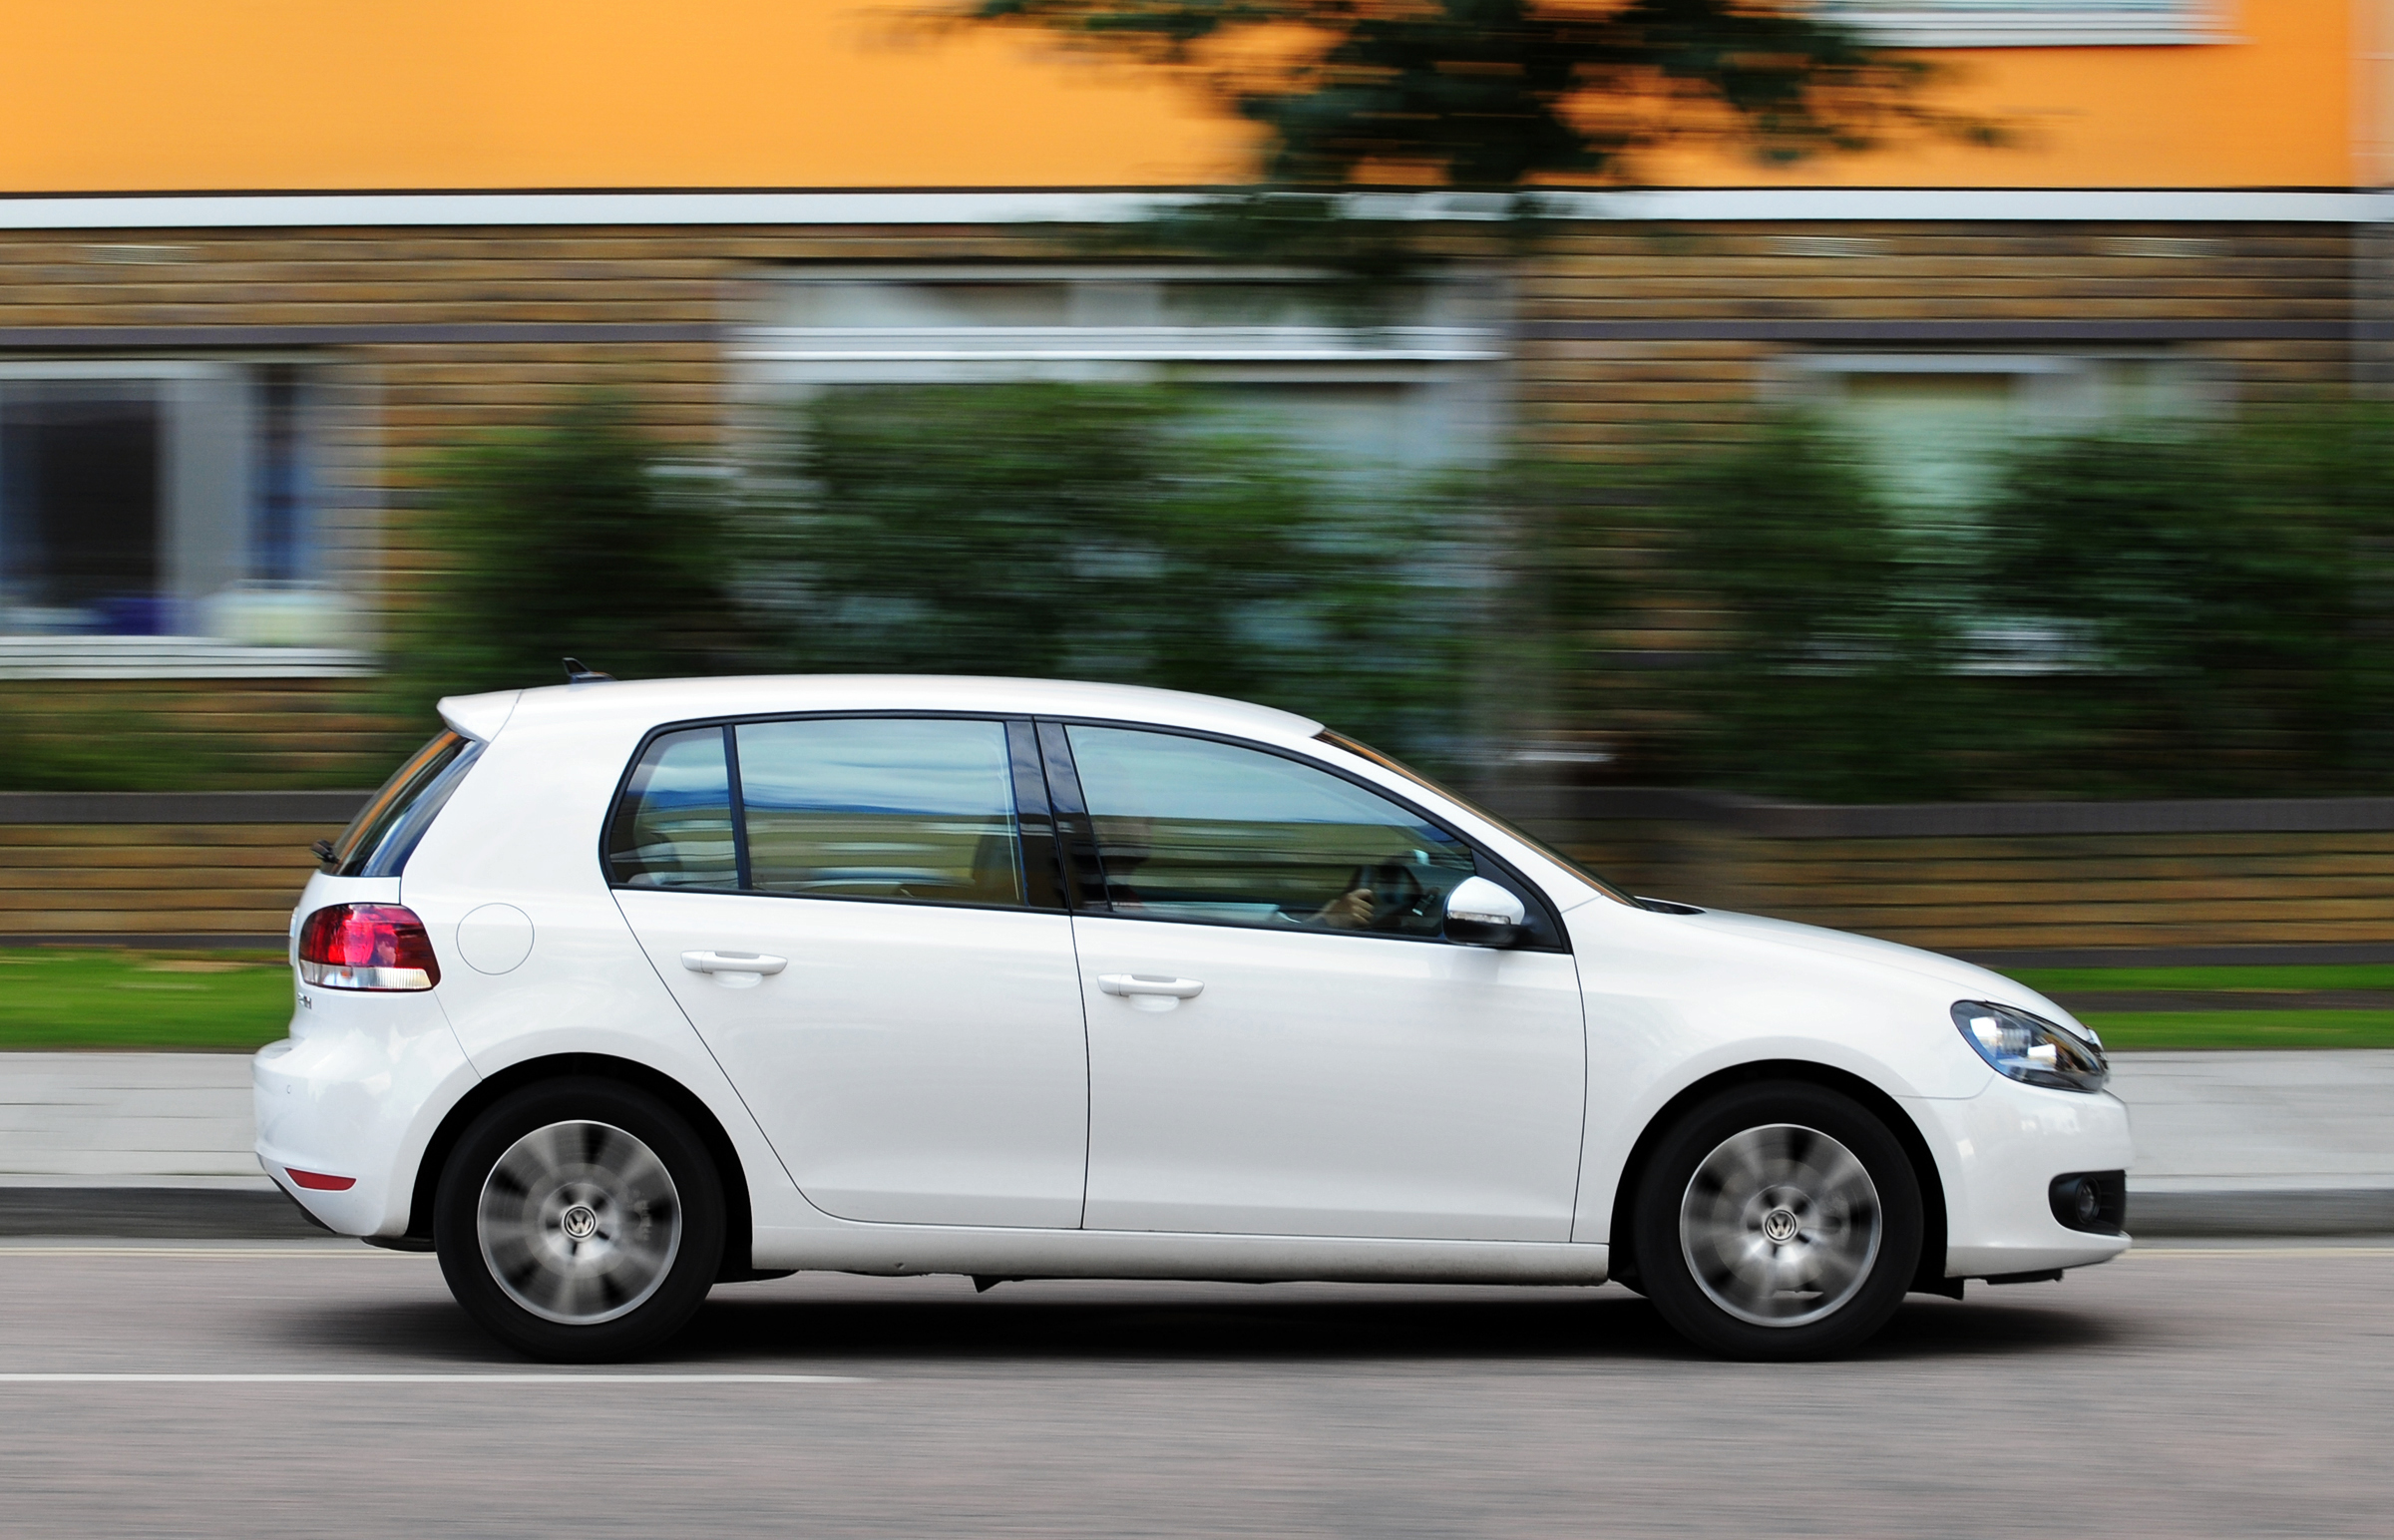 Volkswagen Golf VI Match is added to the model line-up